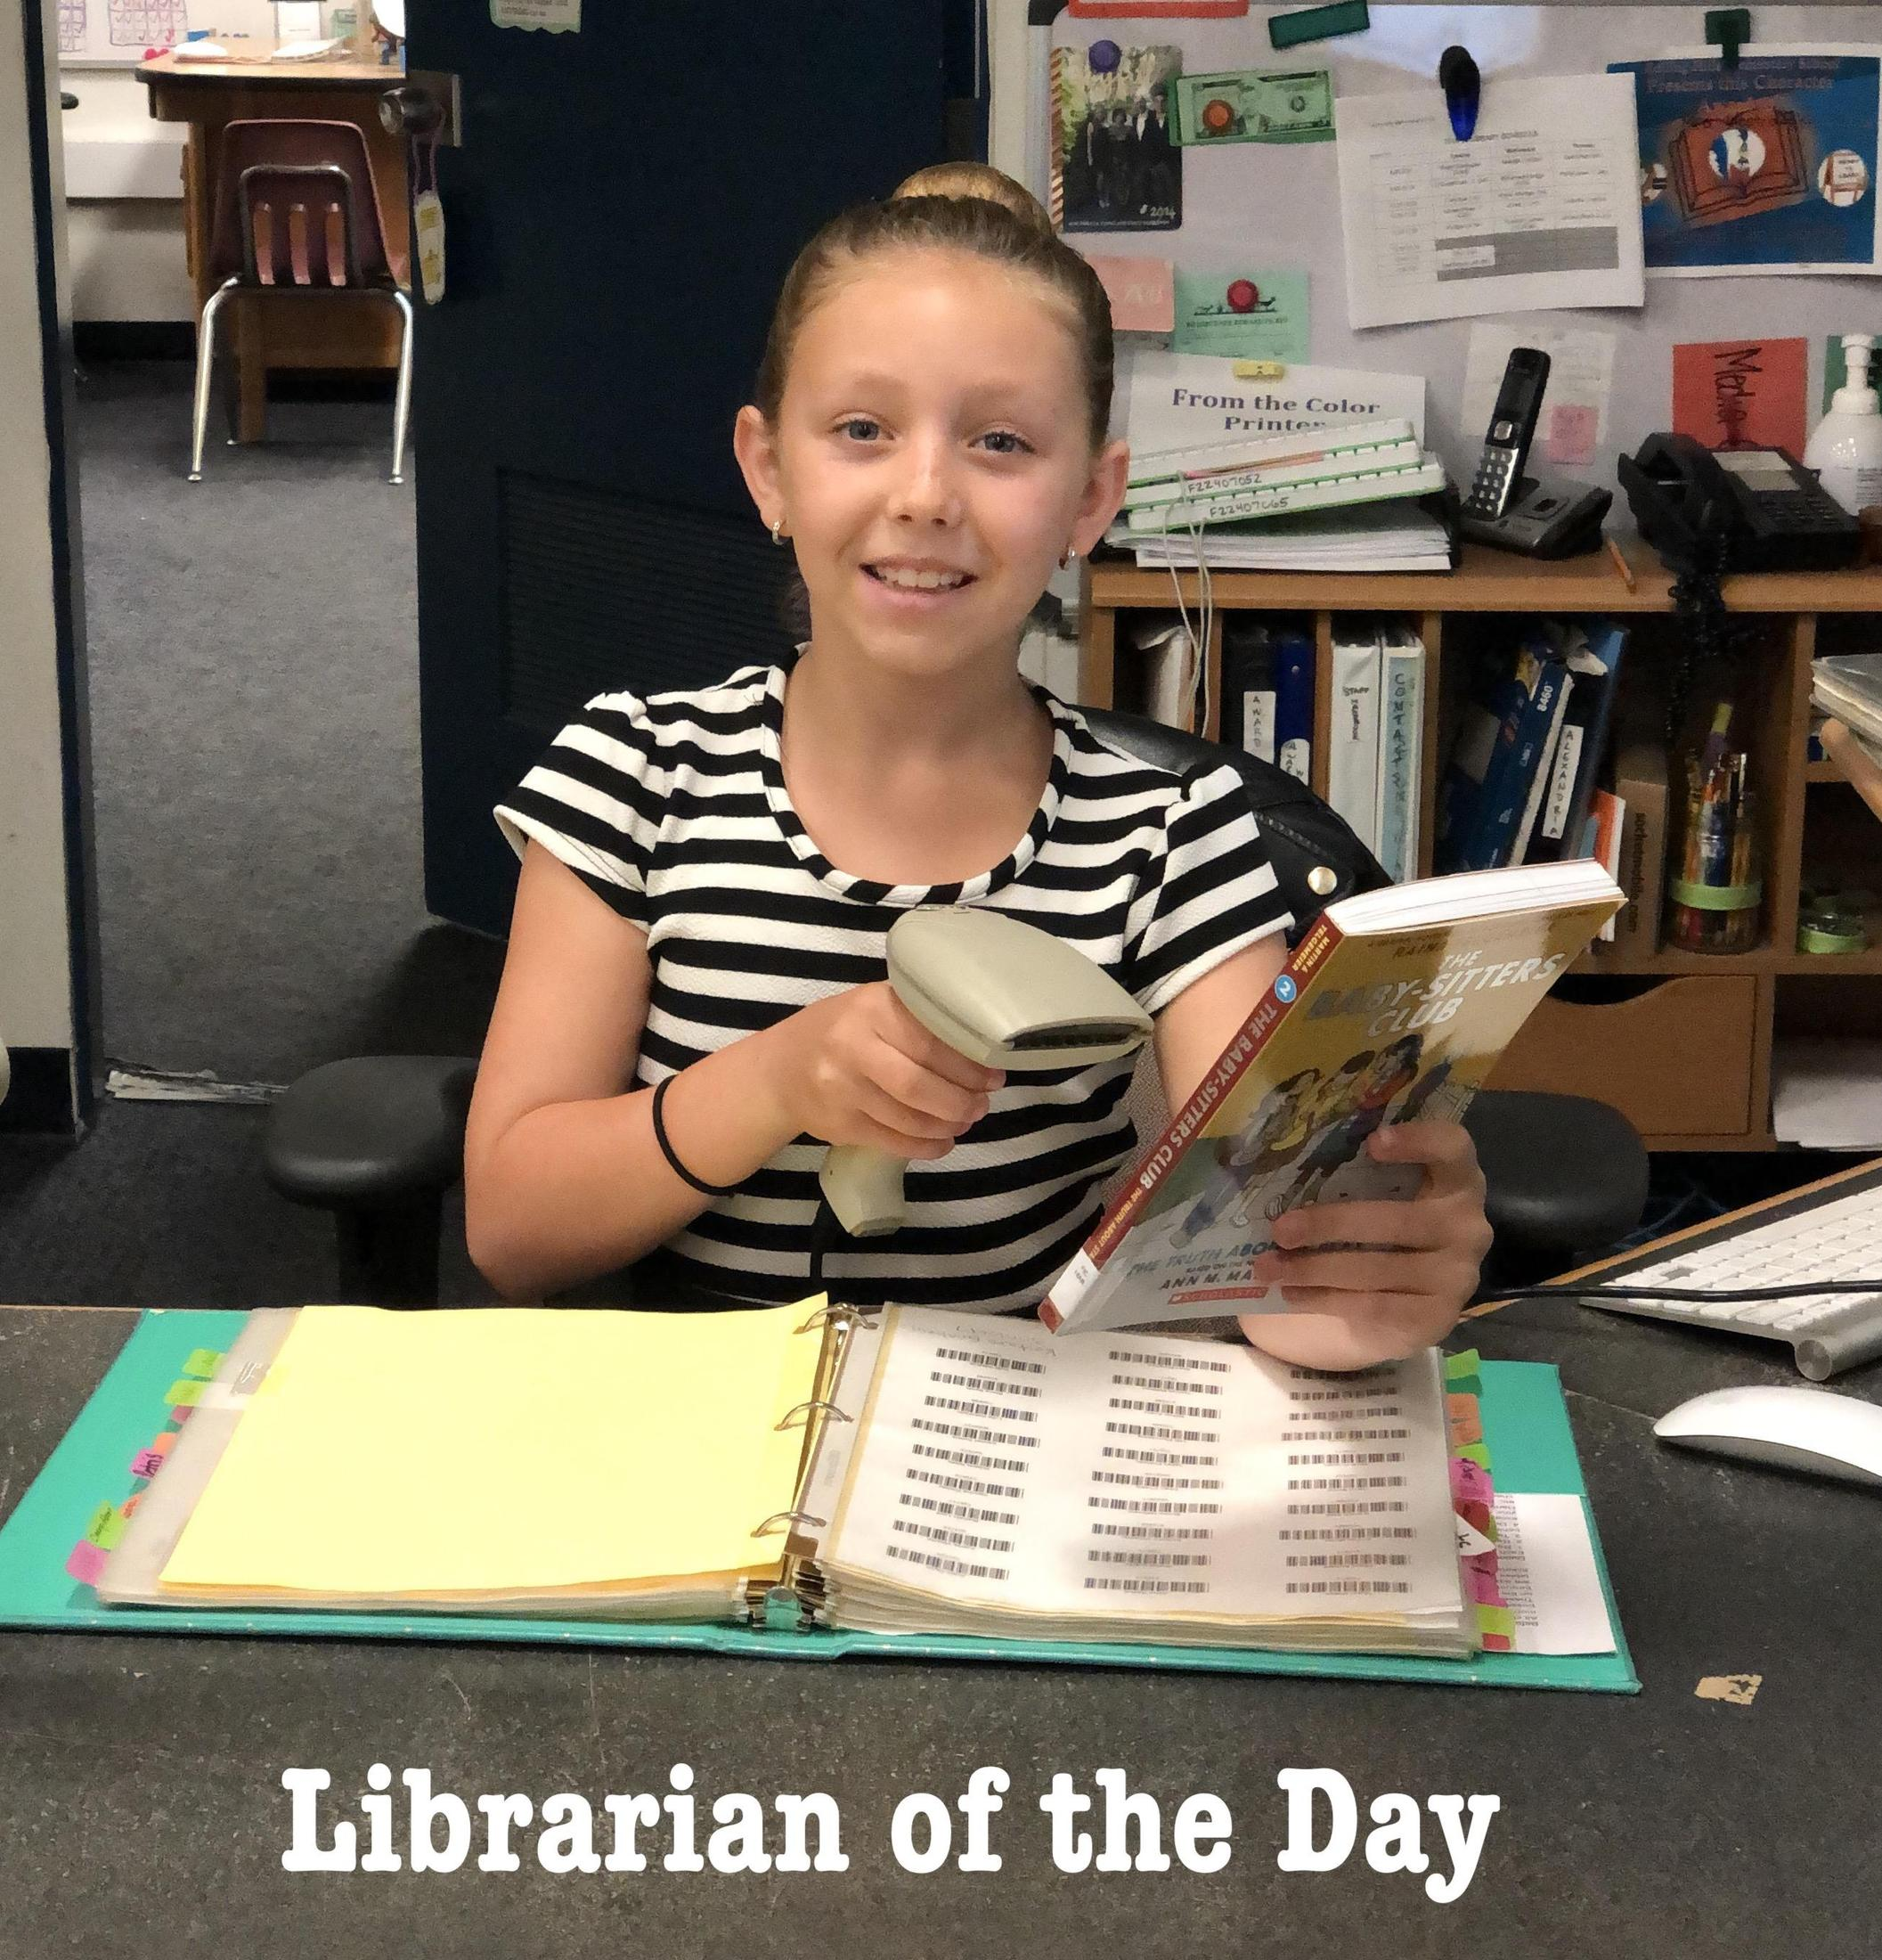 Librarian of the Day